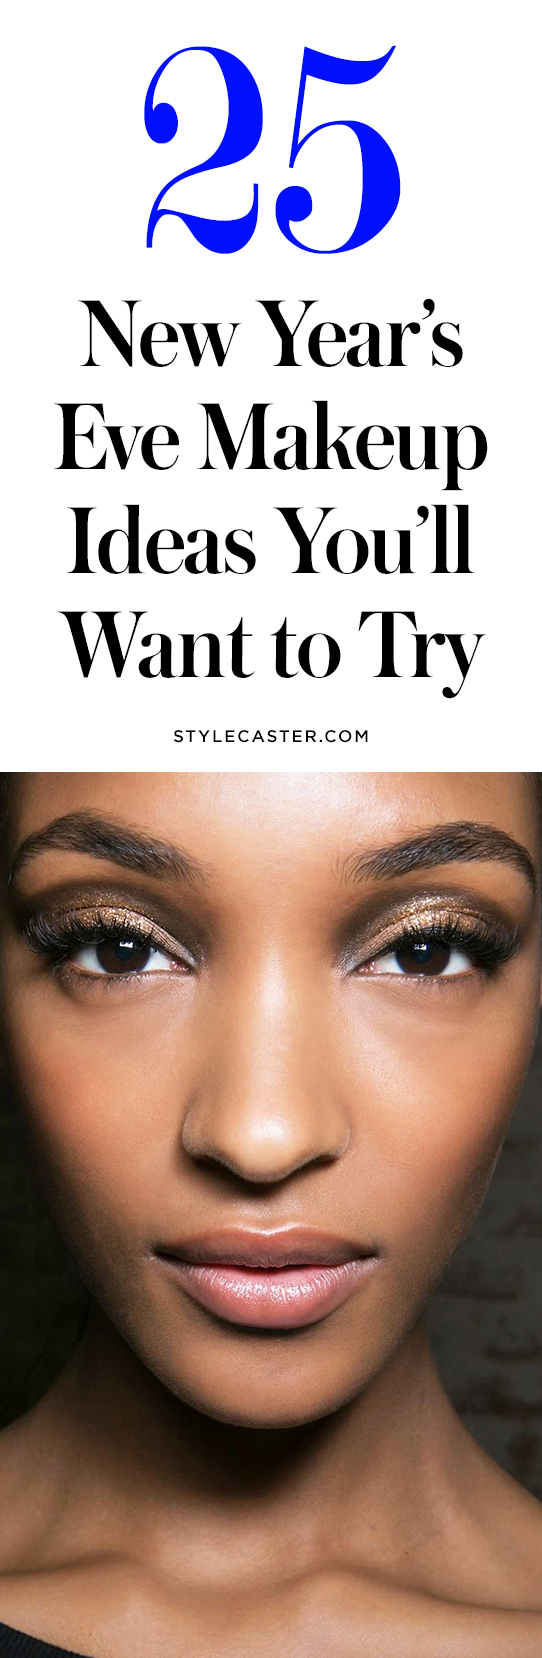 25 New Year's Eve makeup ideas | @stylecaster